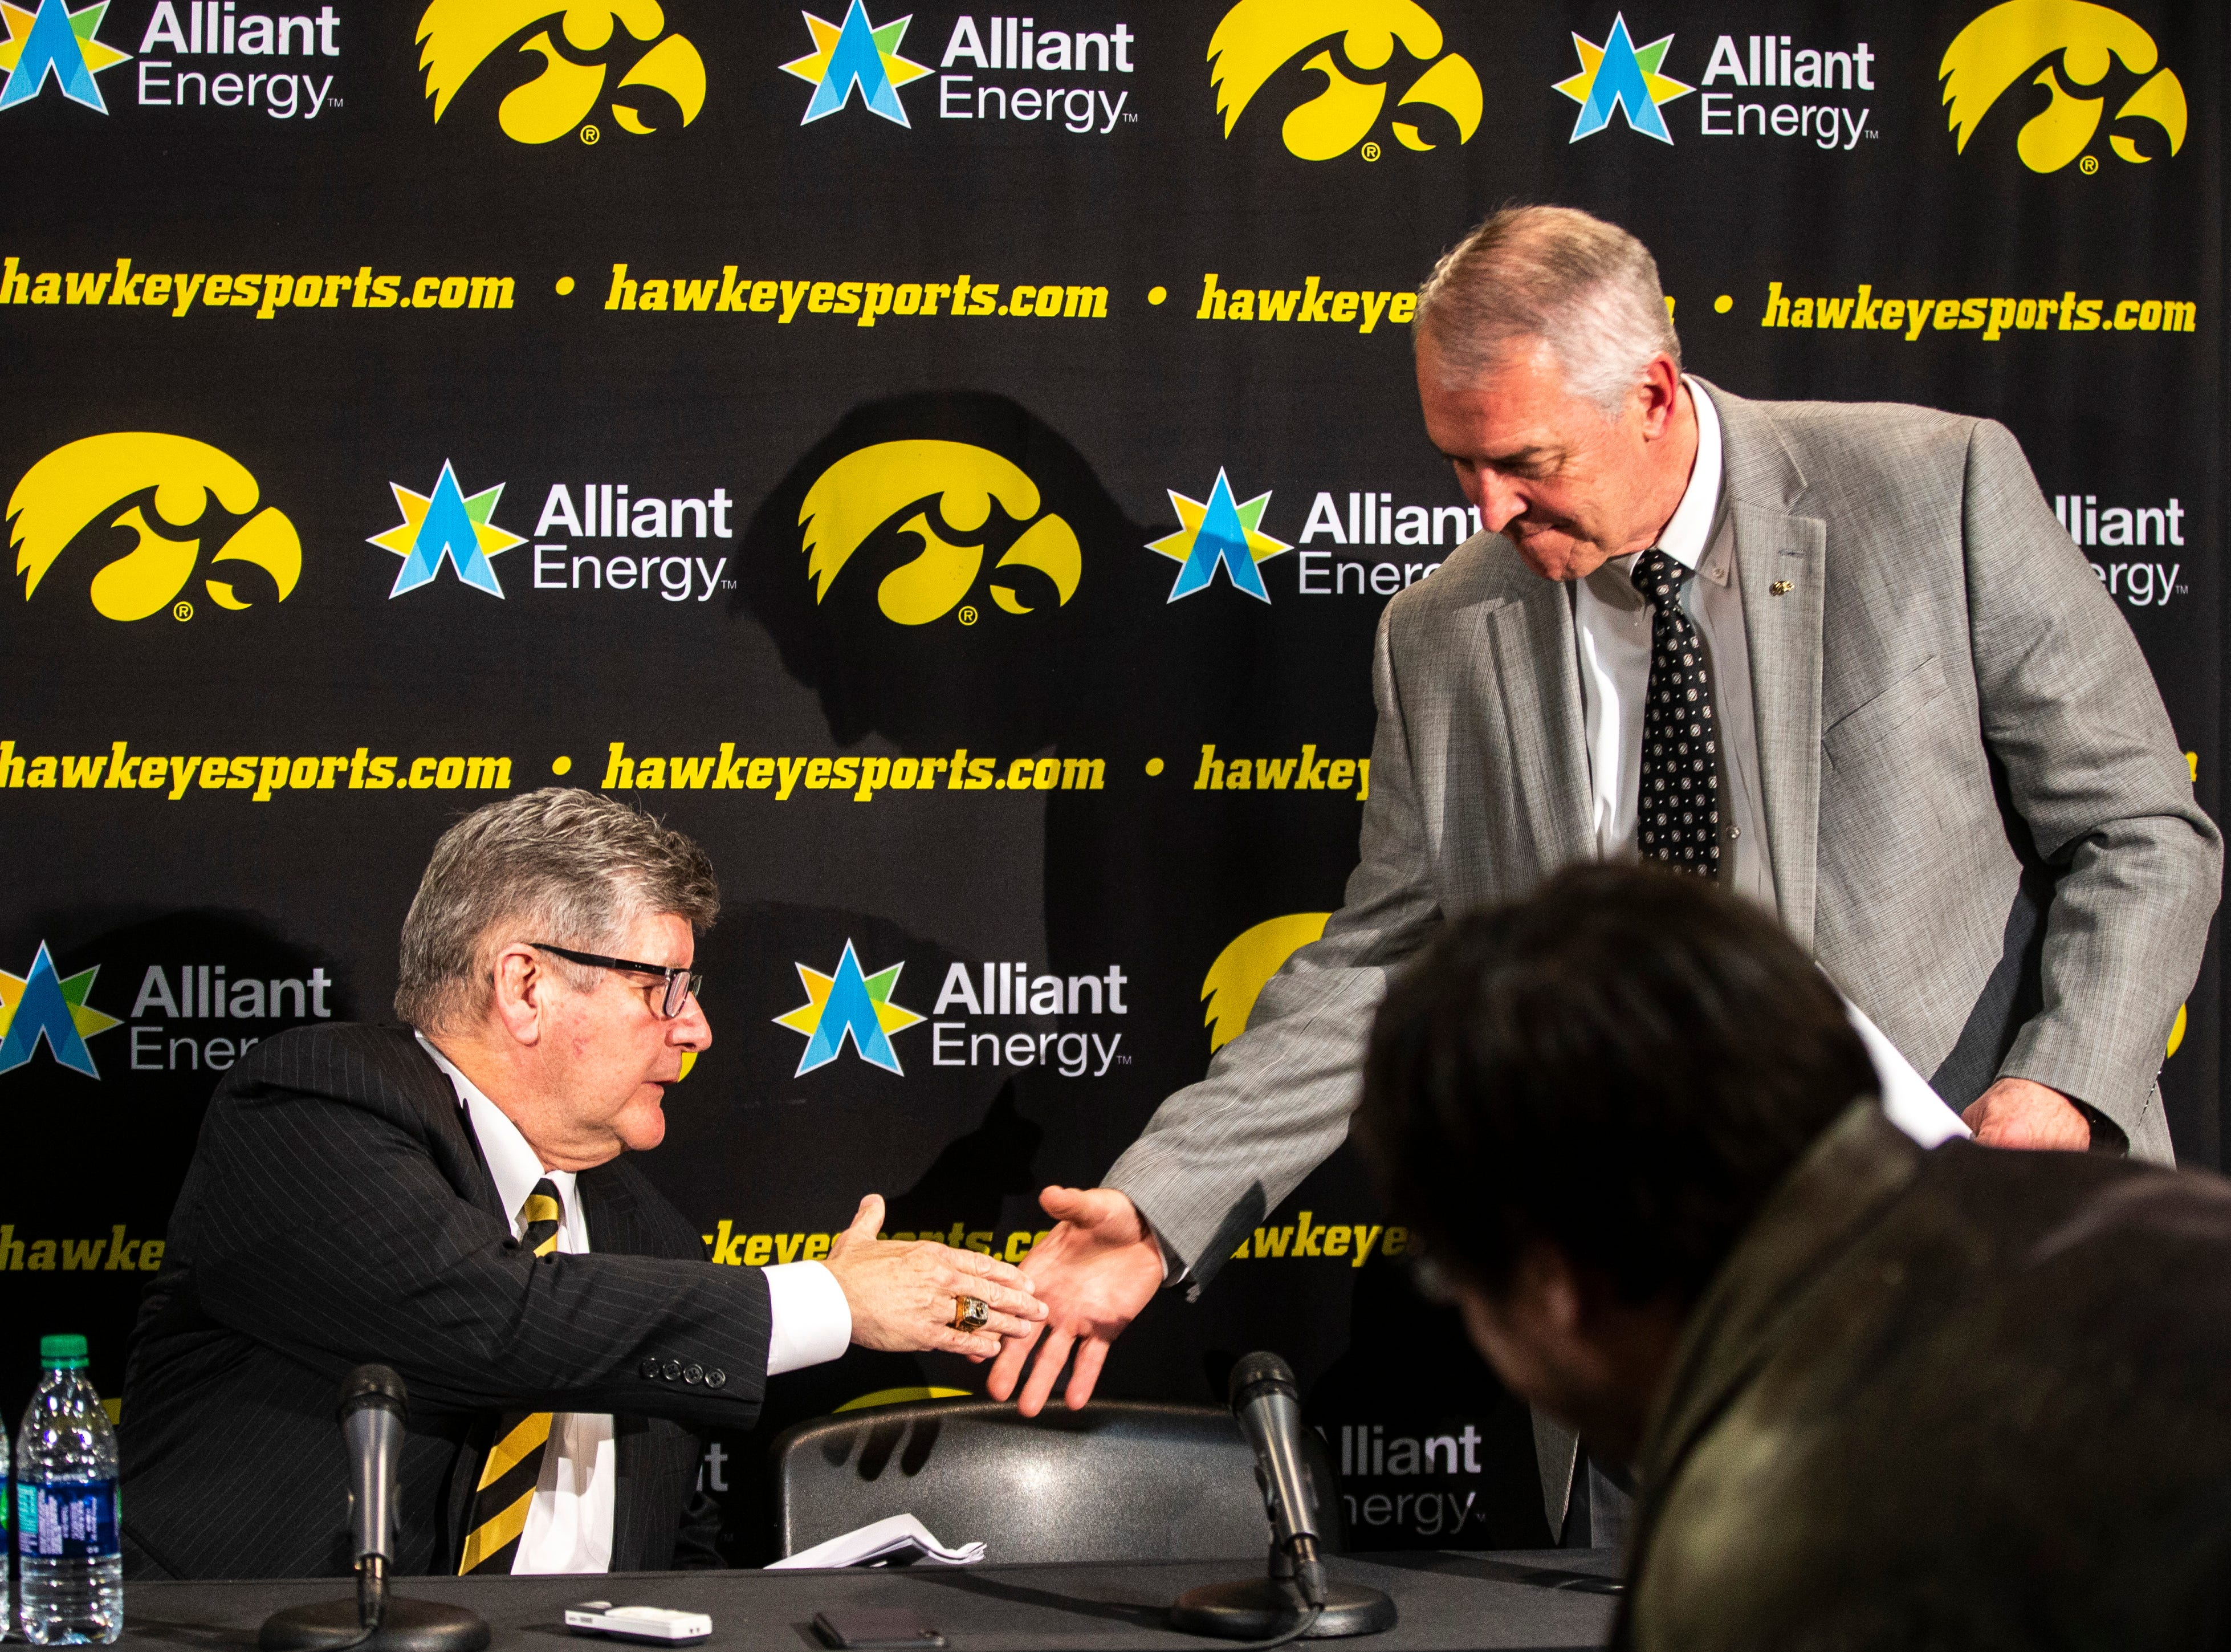 Iowa play-by-play commentator Gary Dolphin, left, and Iowa athletic director Gary Barta shake hands during a press conference on Wednesday, Feb. 27, 2019, at Carver-Hawkeye Arena in Iowa City, Iowa.